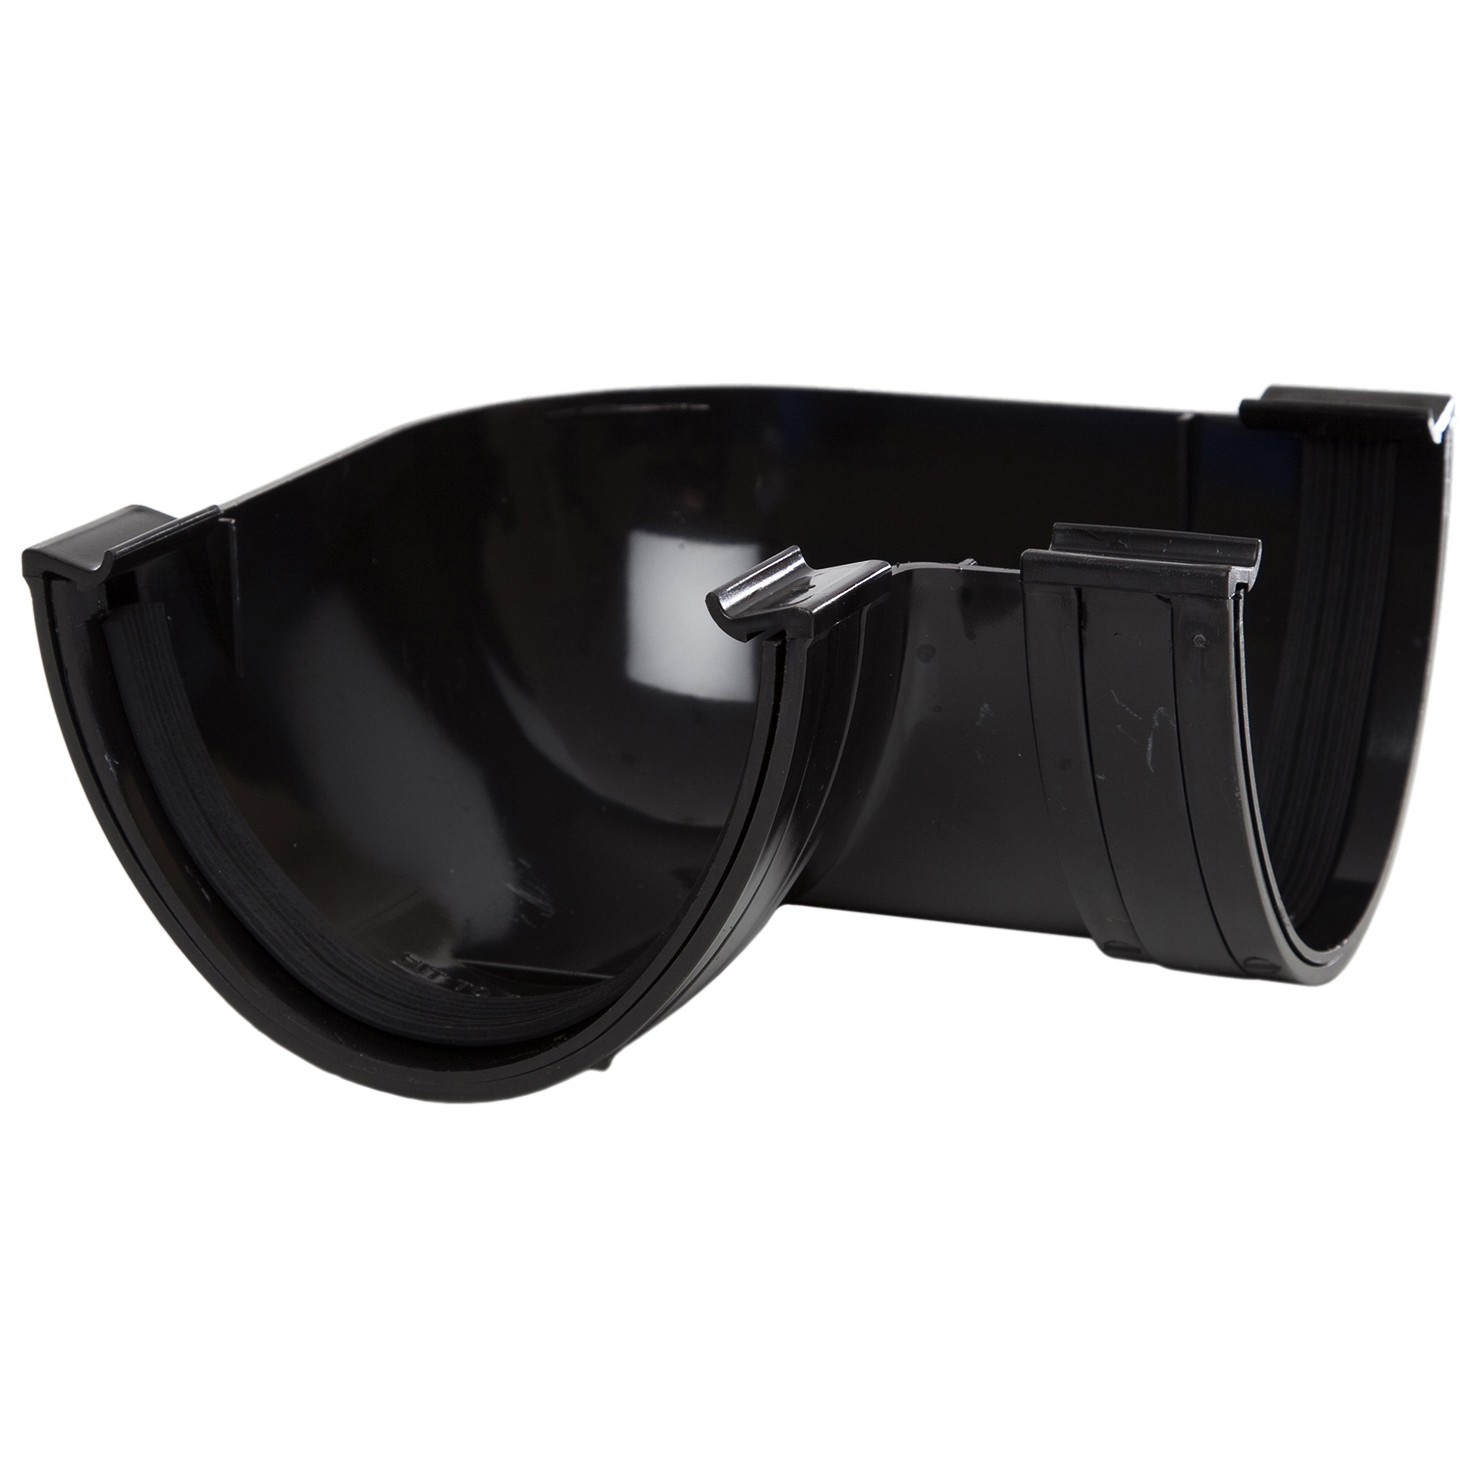 Polypipe 117mm Polyflow Deep Capacity Gutter 90 Degree Angle - Black